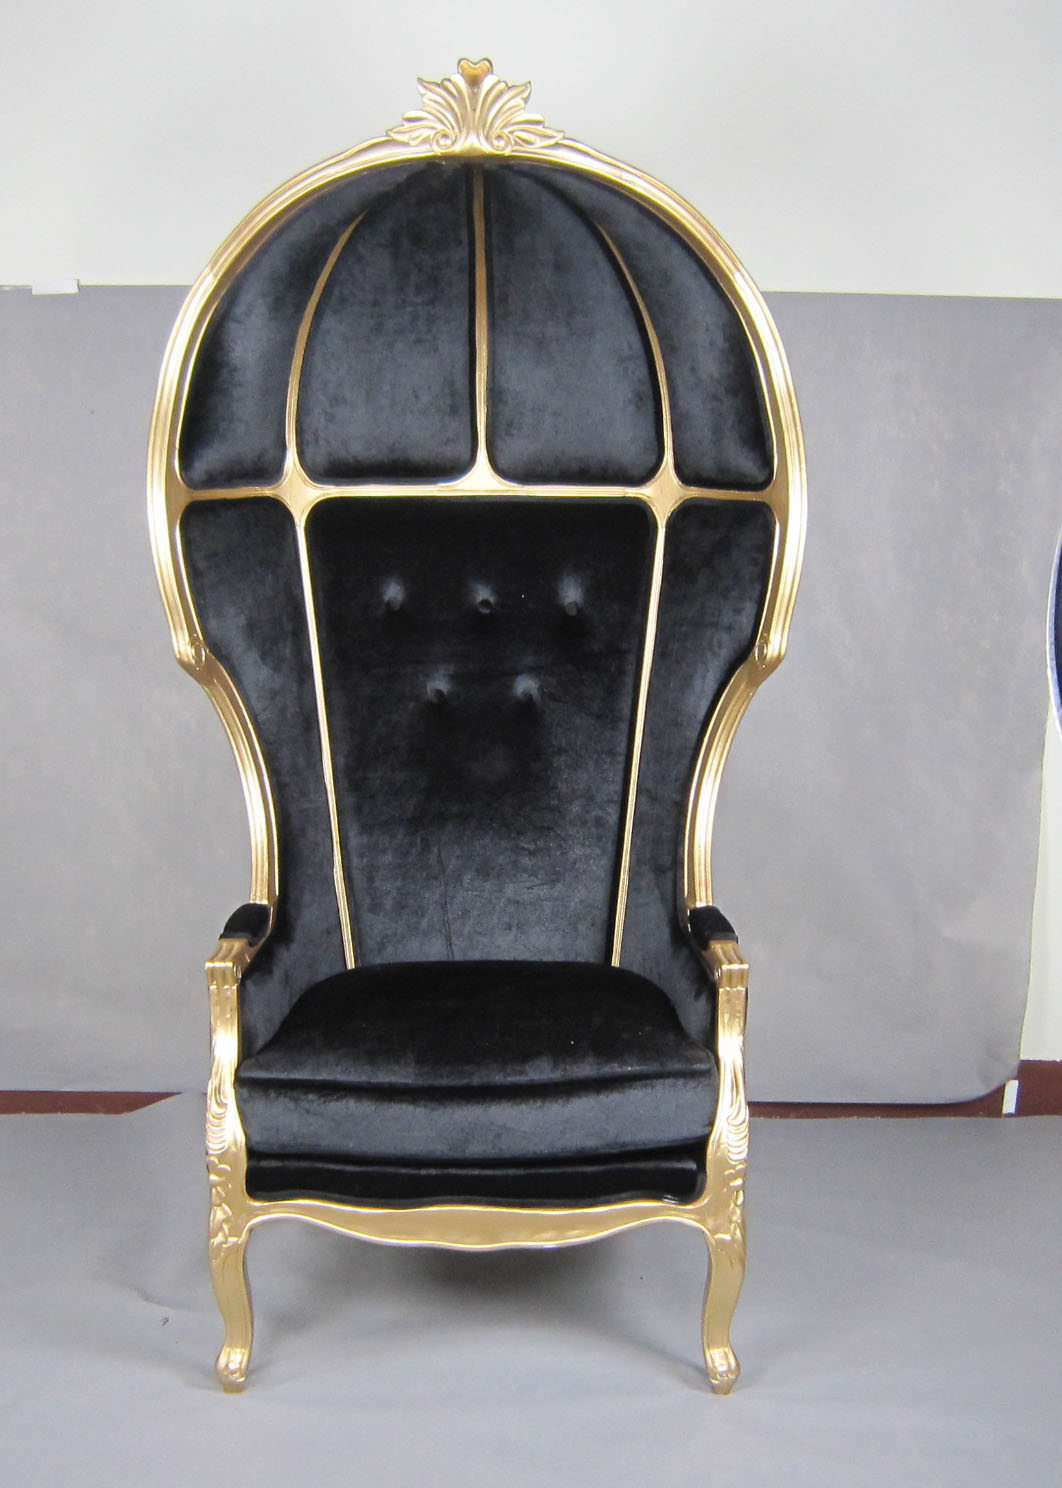 Black Throne Chair Covers And Bows The Mod Spot Group Order On Custom Chairs 999 00